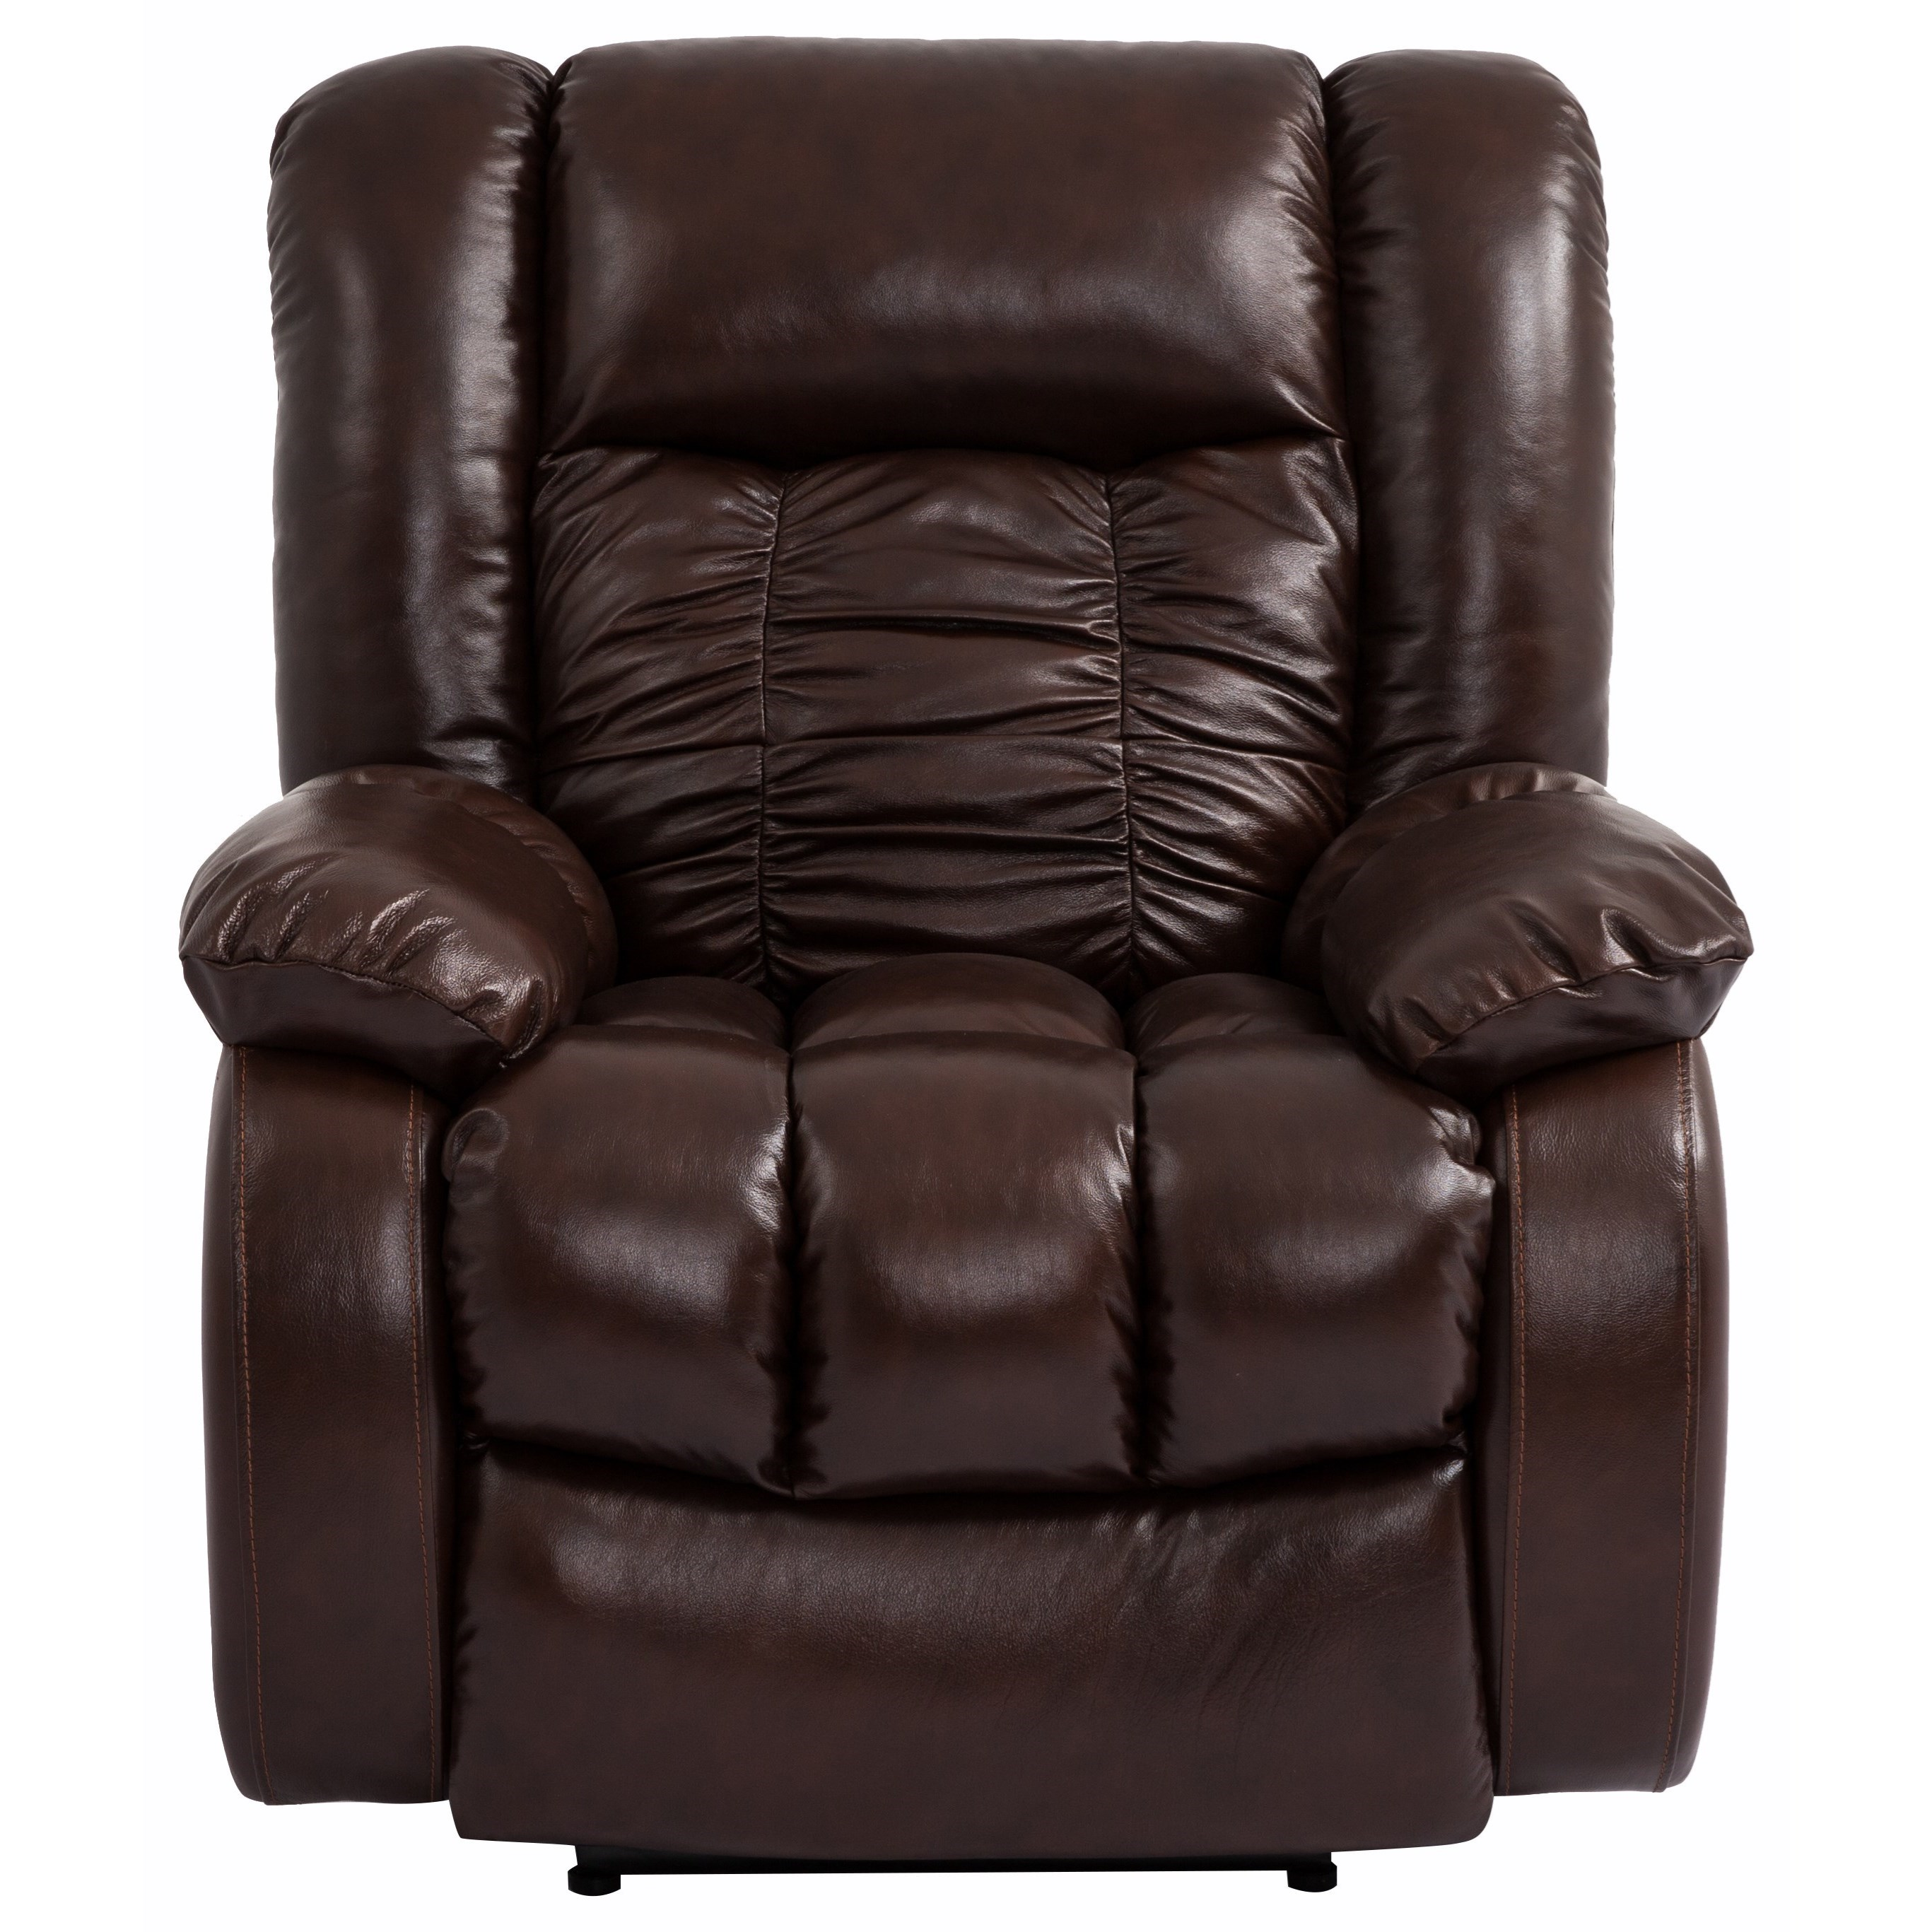 Cheers Sofa UK358 Glider Recliner with Pillow Arms - Royal Furniture - Three Way Recliners